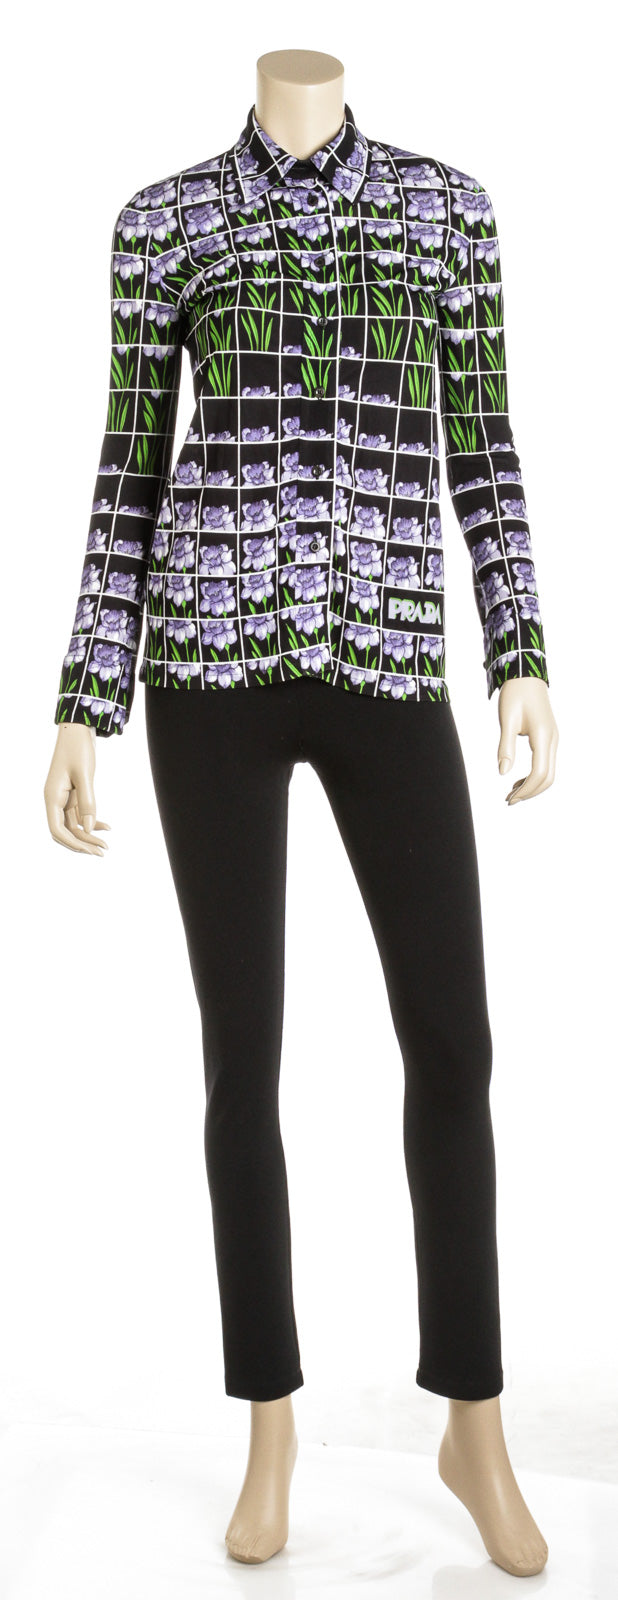 Prada Black and Purple Viscose Floral Grid Print Blouse (Size 36)